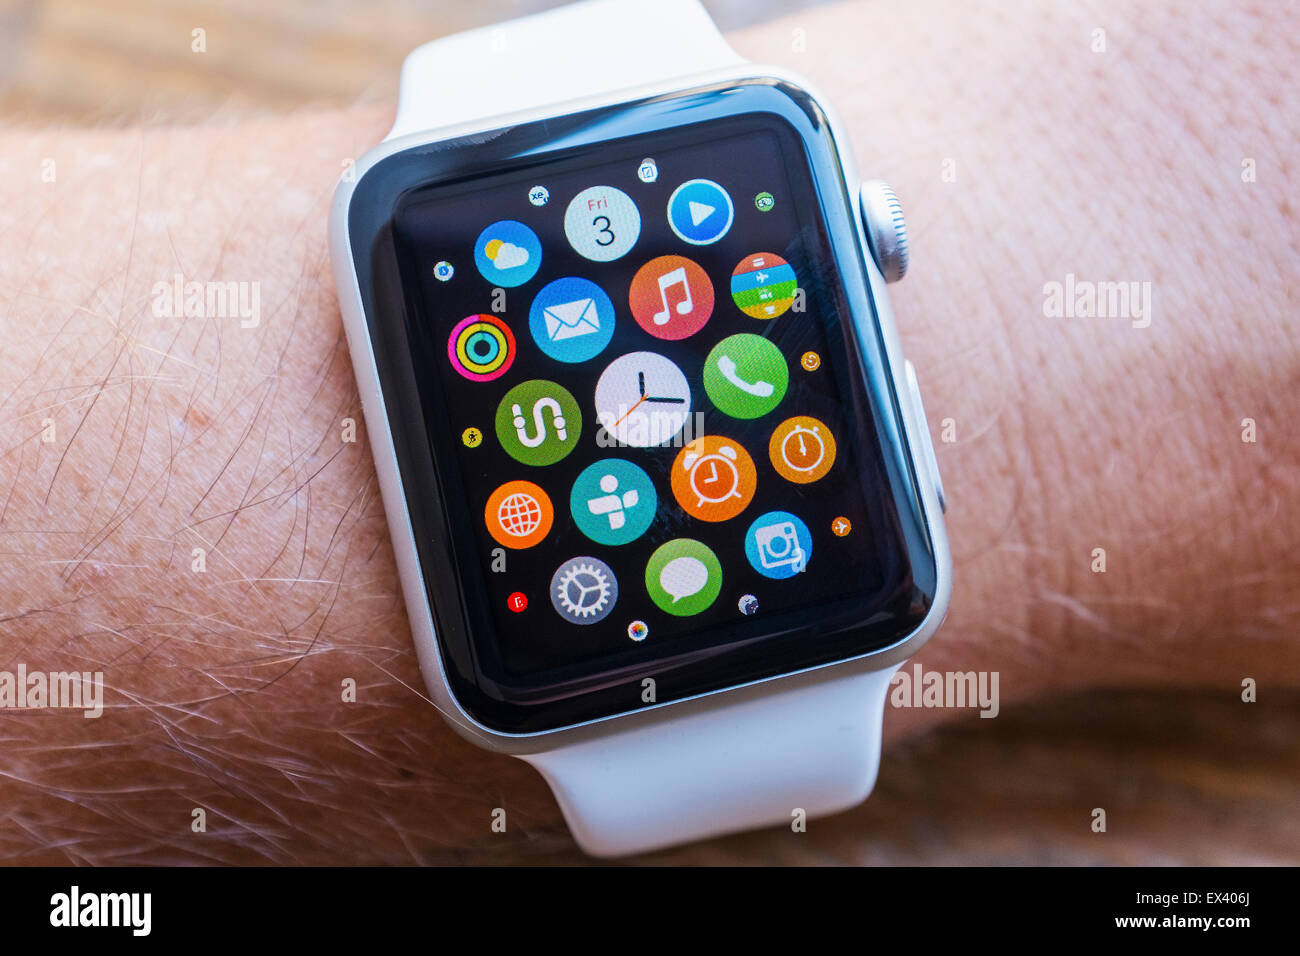 Detail of many apps on screen of an Apple Watch - Stock Image